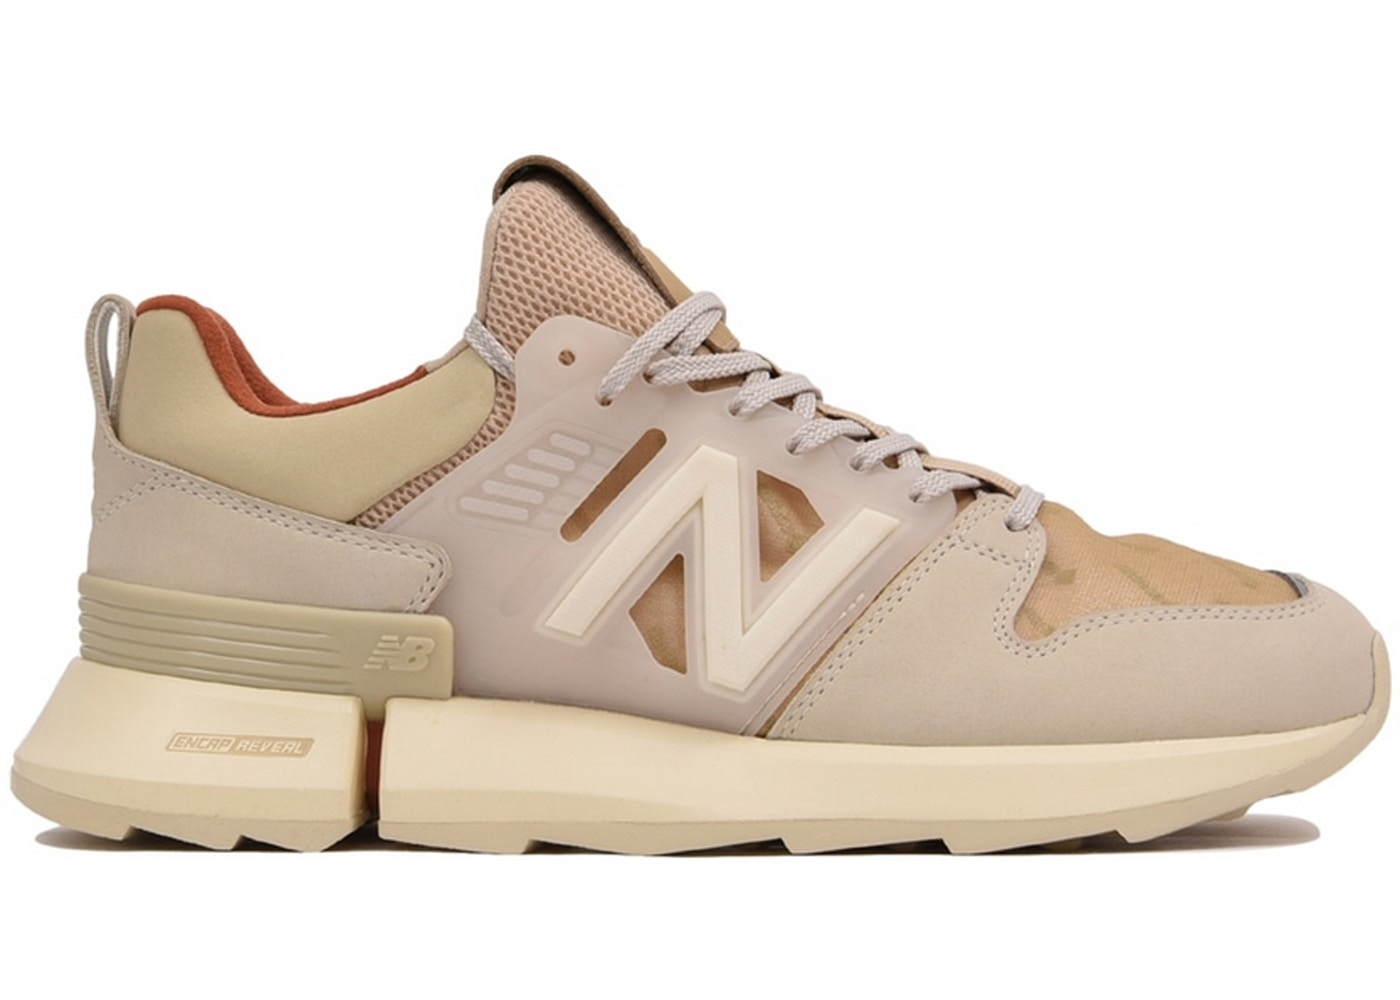 online retailer 0cdaf 5f0e9 New Balance Size 15 Shoes - Release Date